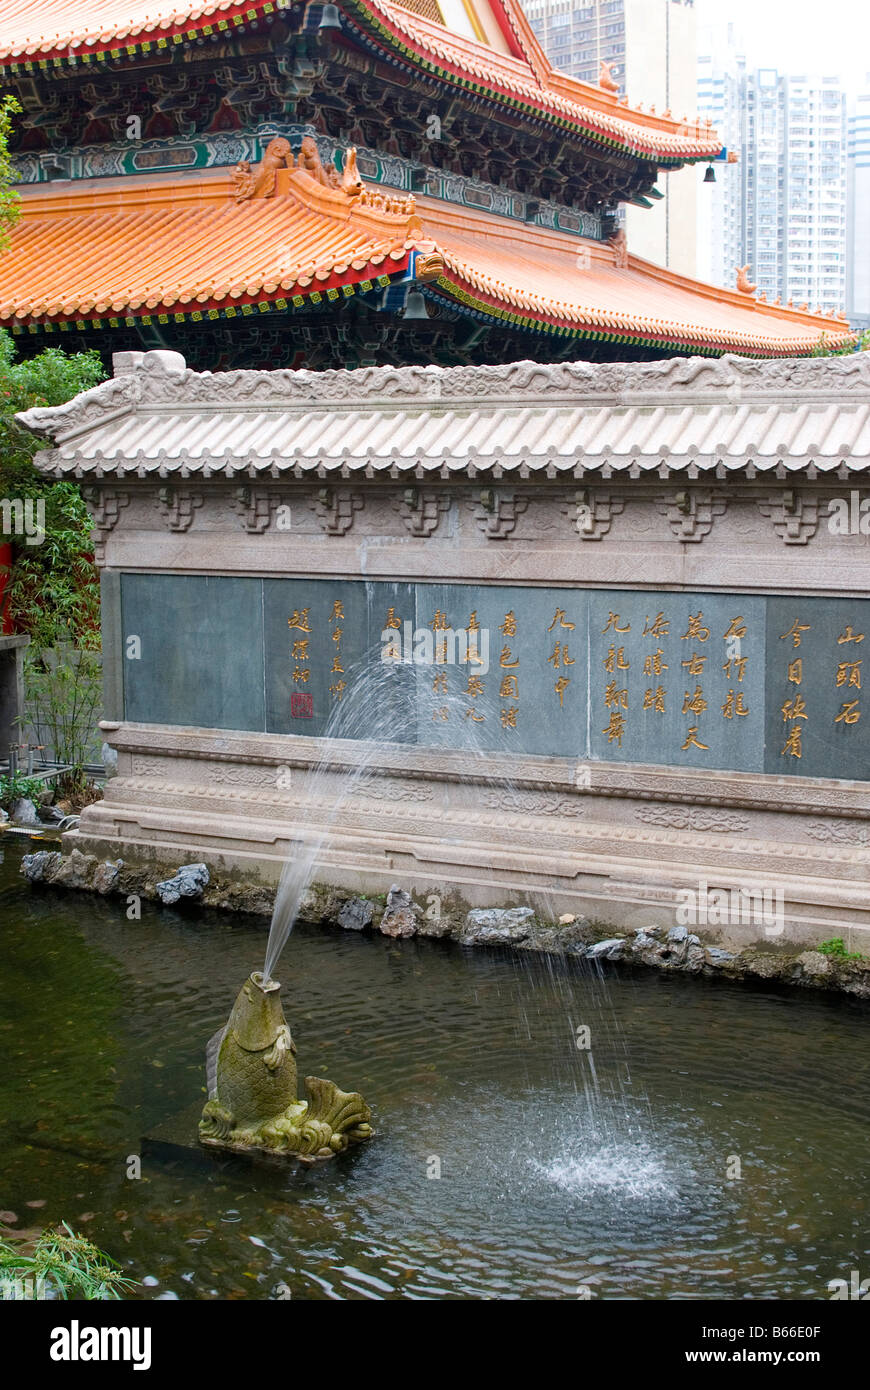 Stone carved carp fountain sprays in ponds by the nine dragons wall in the Good Wish Gardens at Wong Tai Sin Temple. - Stock Image